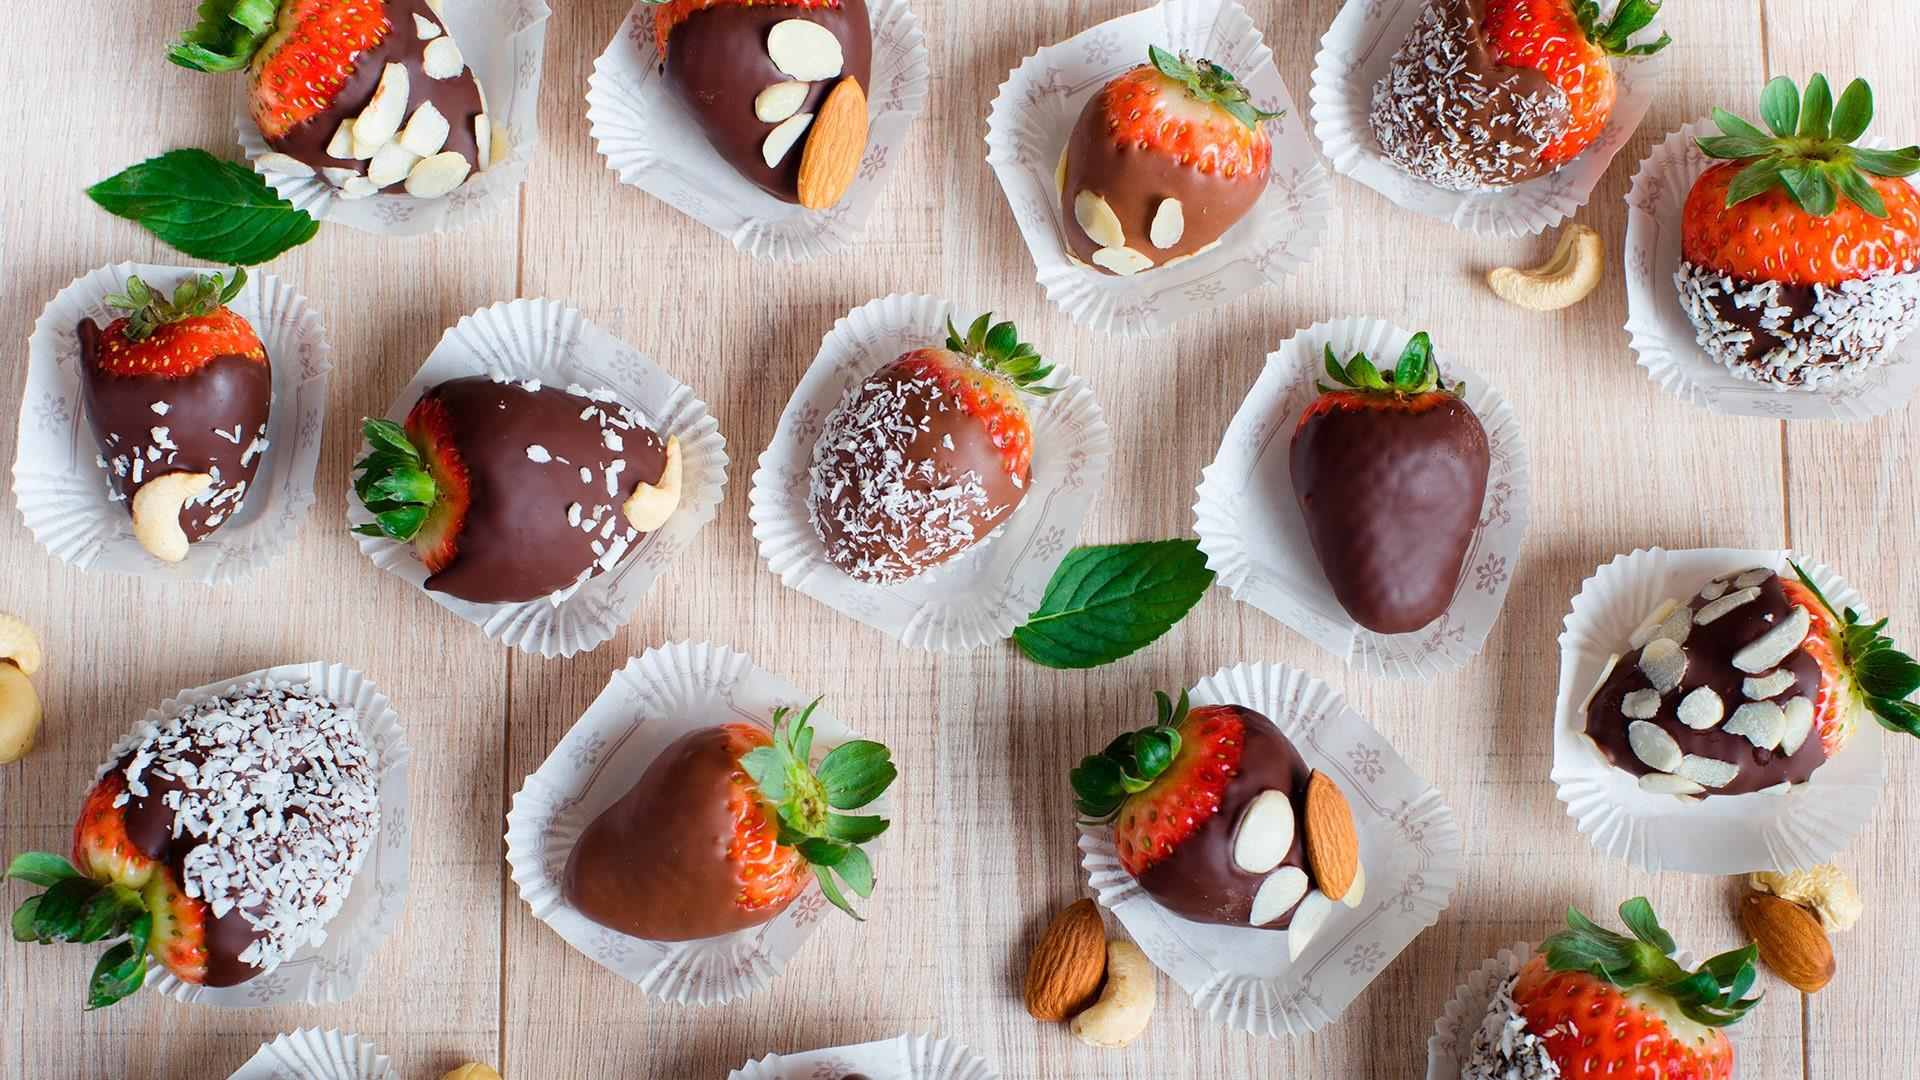 Chocolate-covered fruit wallpaper